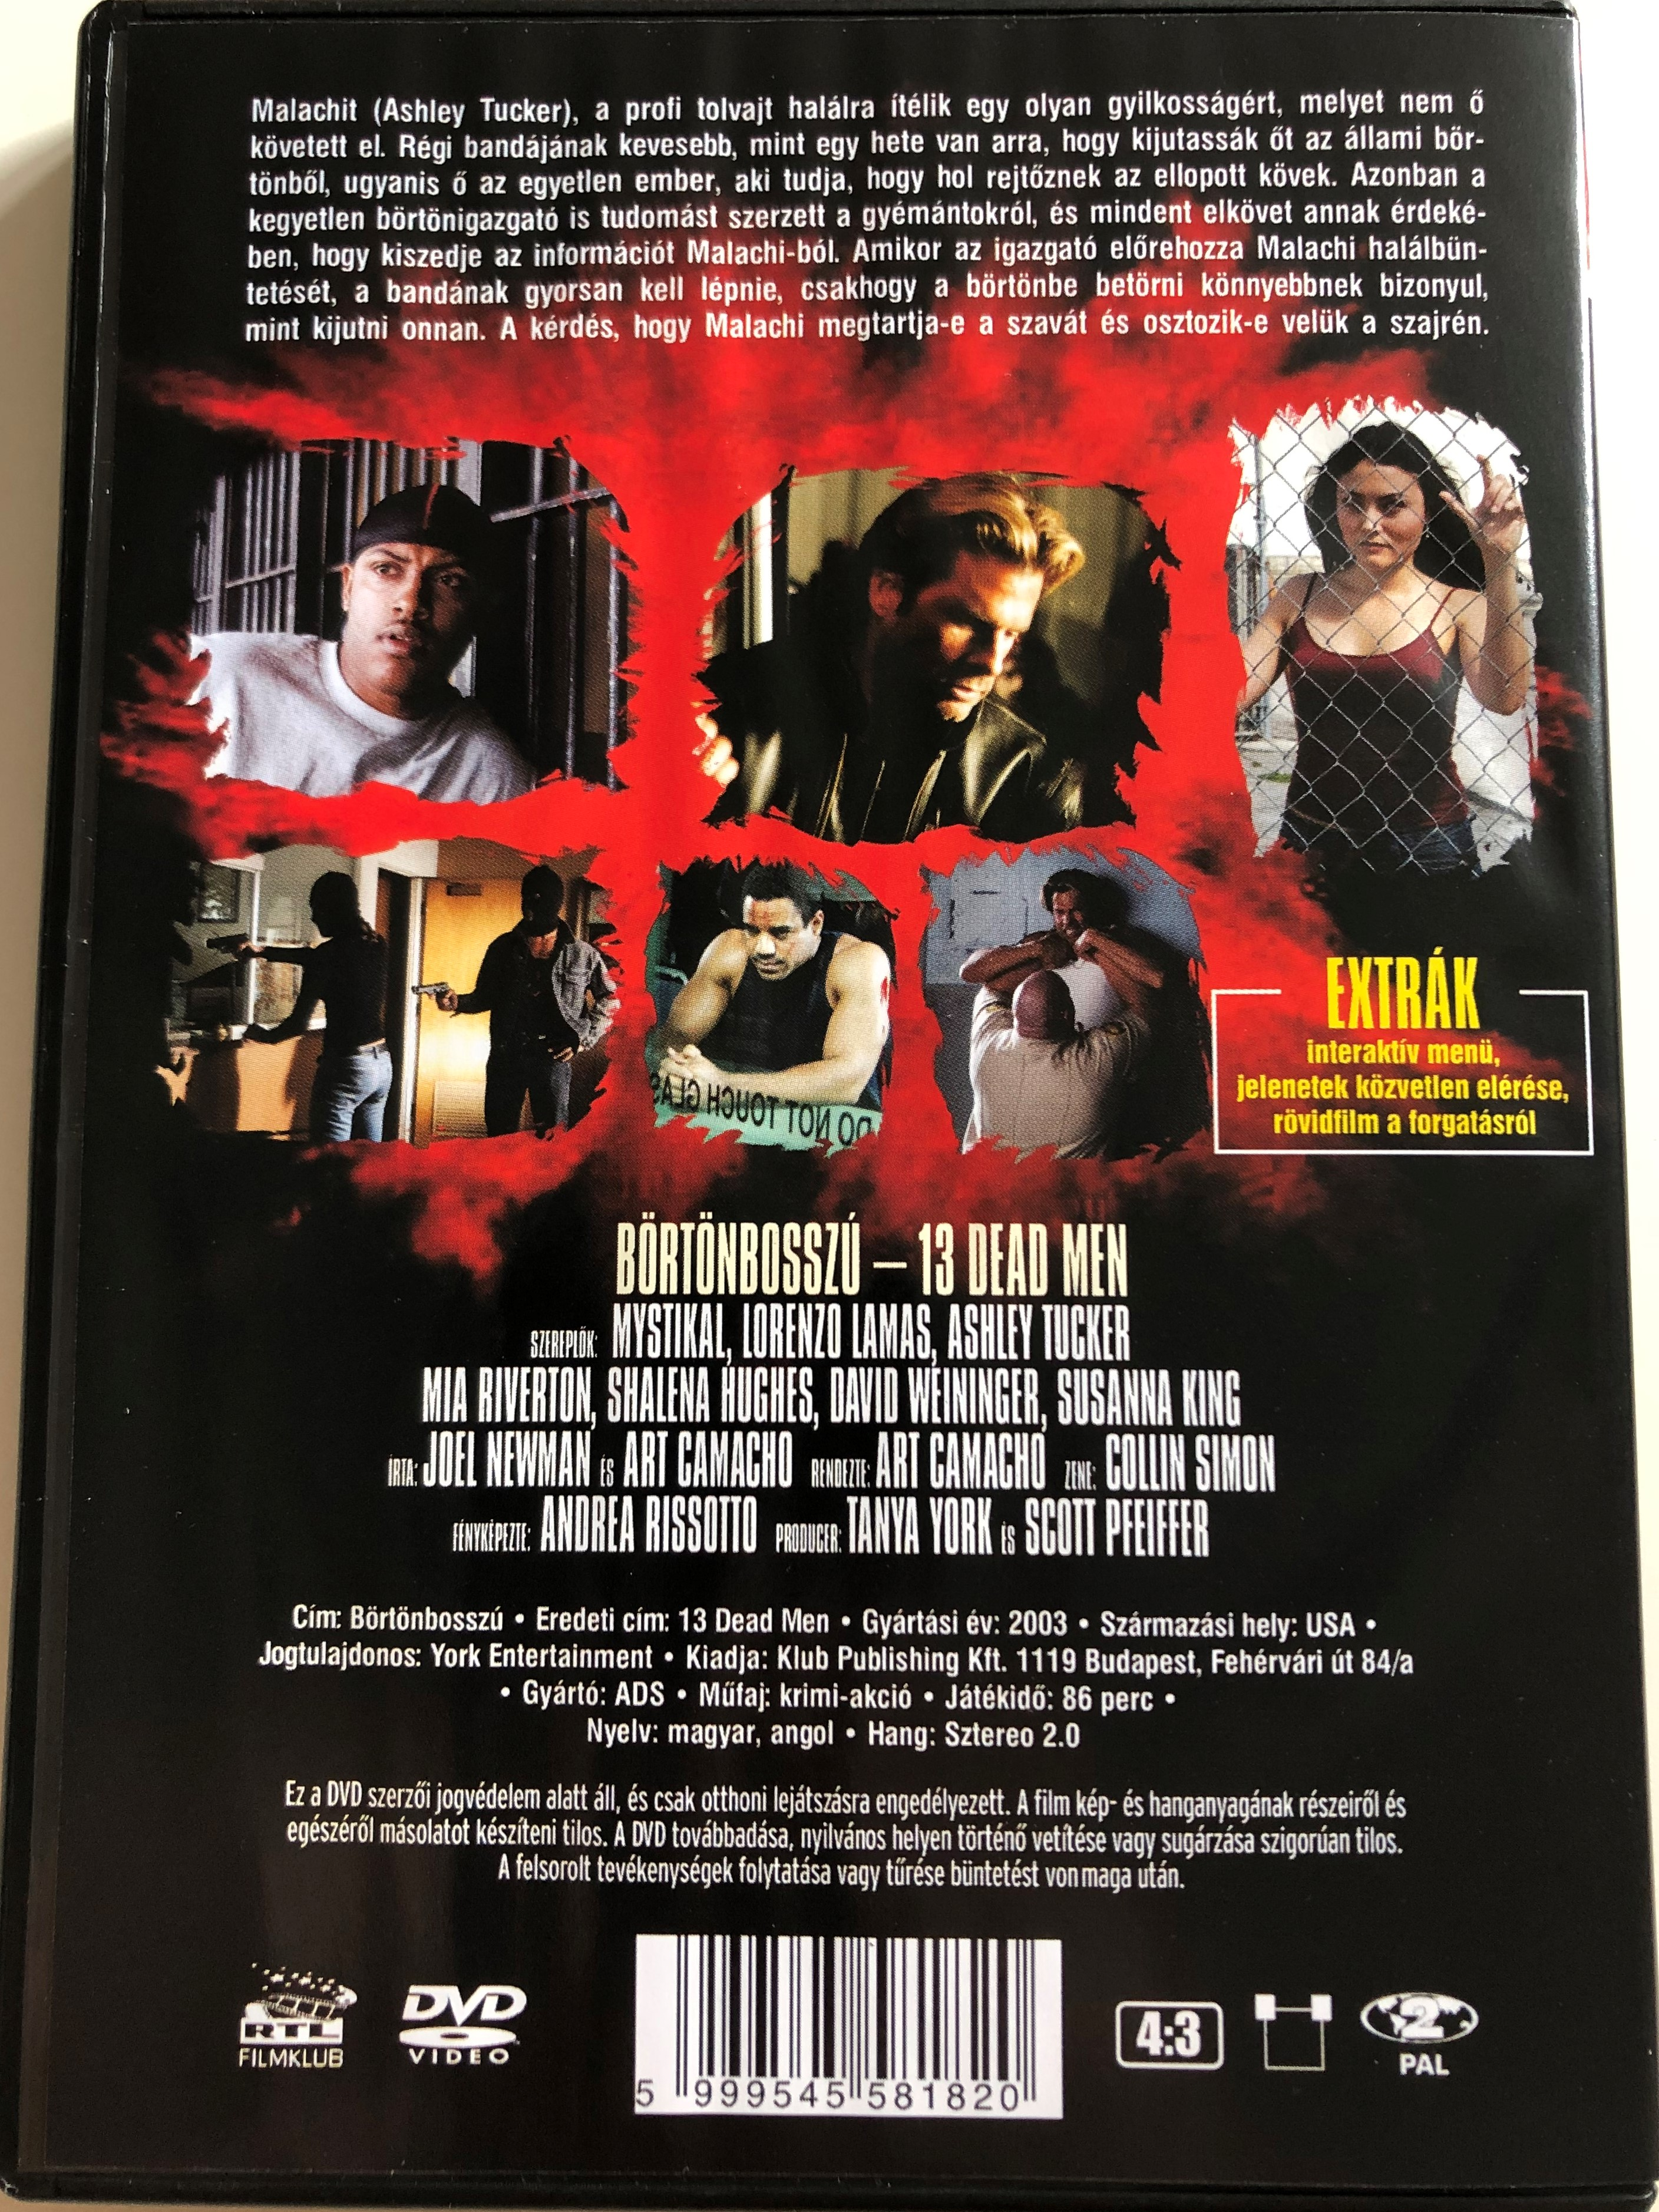 13-dead-men-dvd-2003-b-rt-nbossz-directed-by-art-camacho-starring-mystikal-lorenzo-lamas-2-.jpg